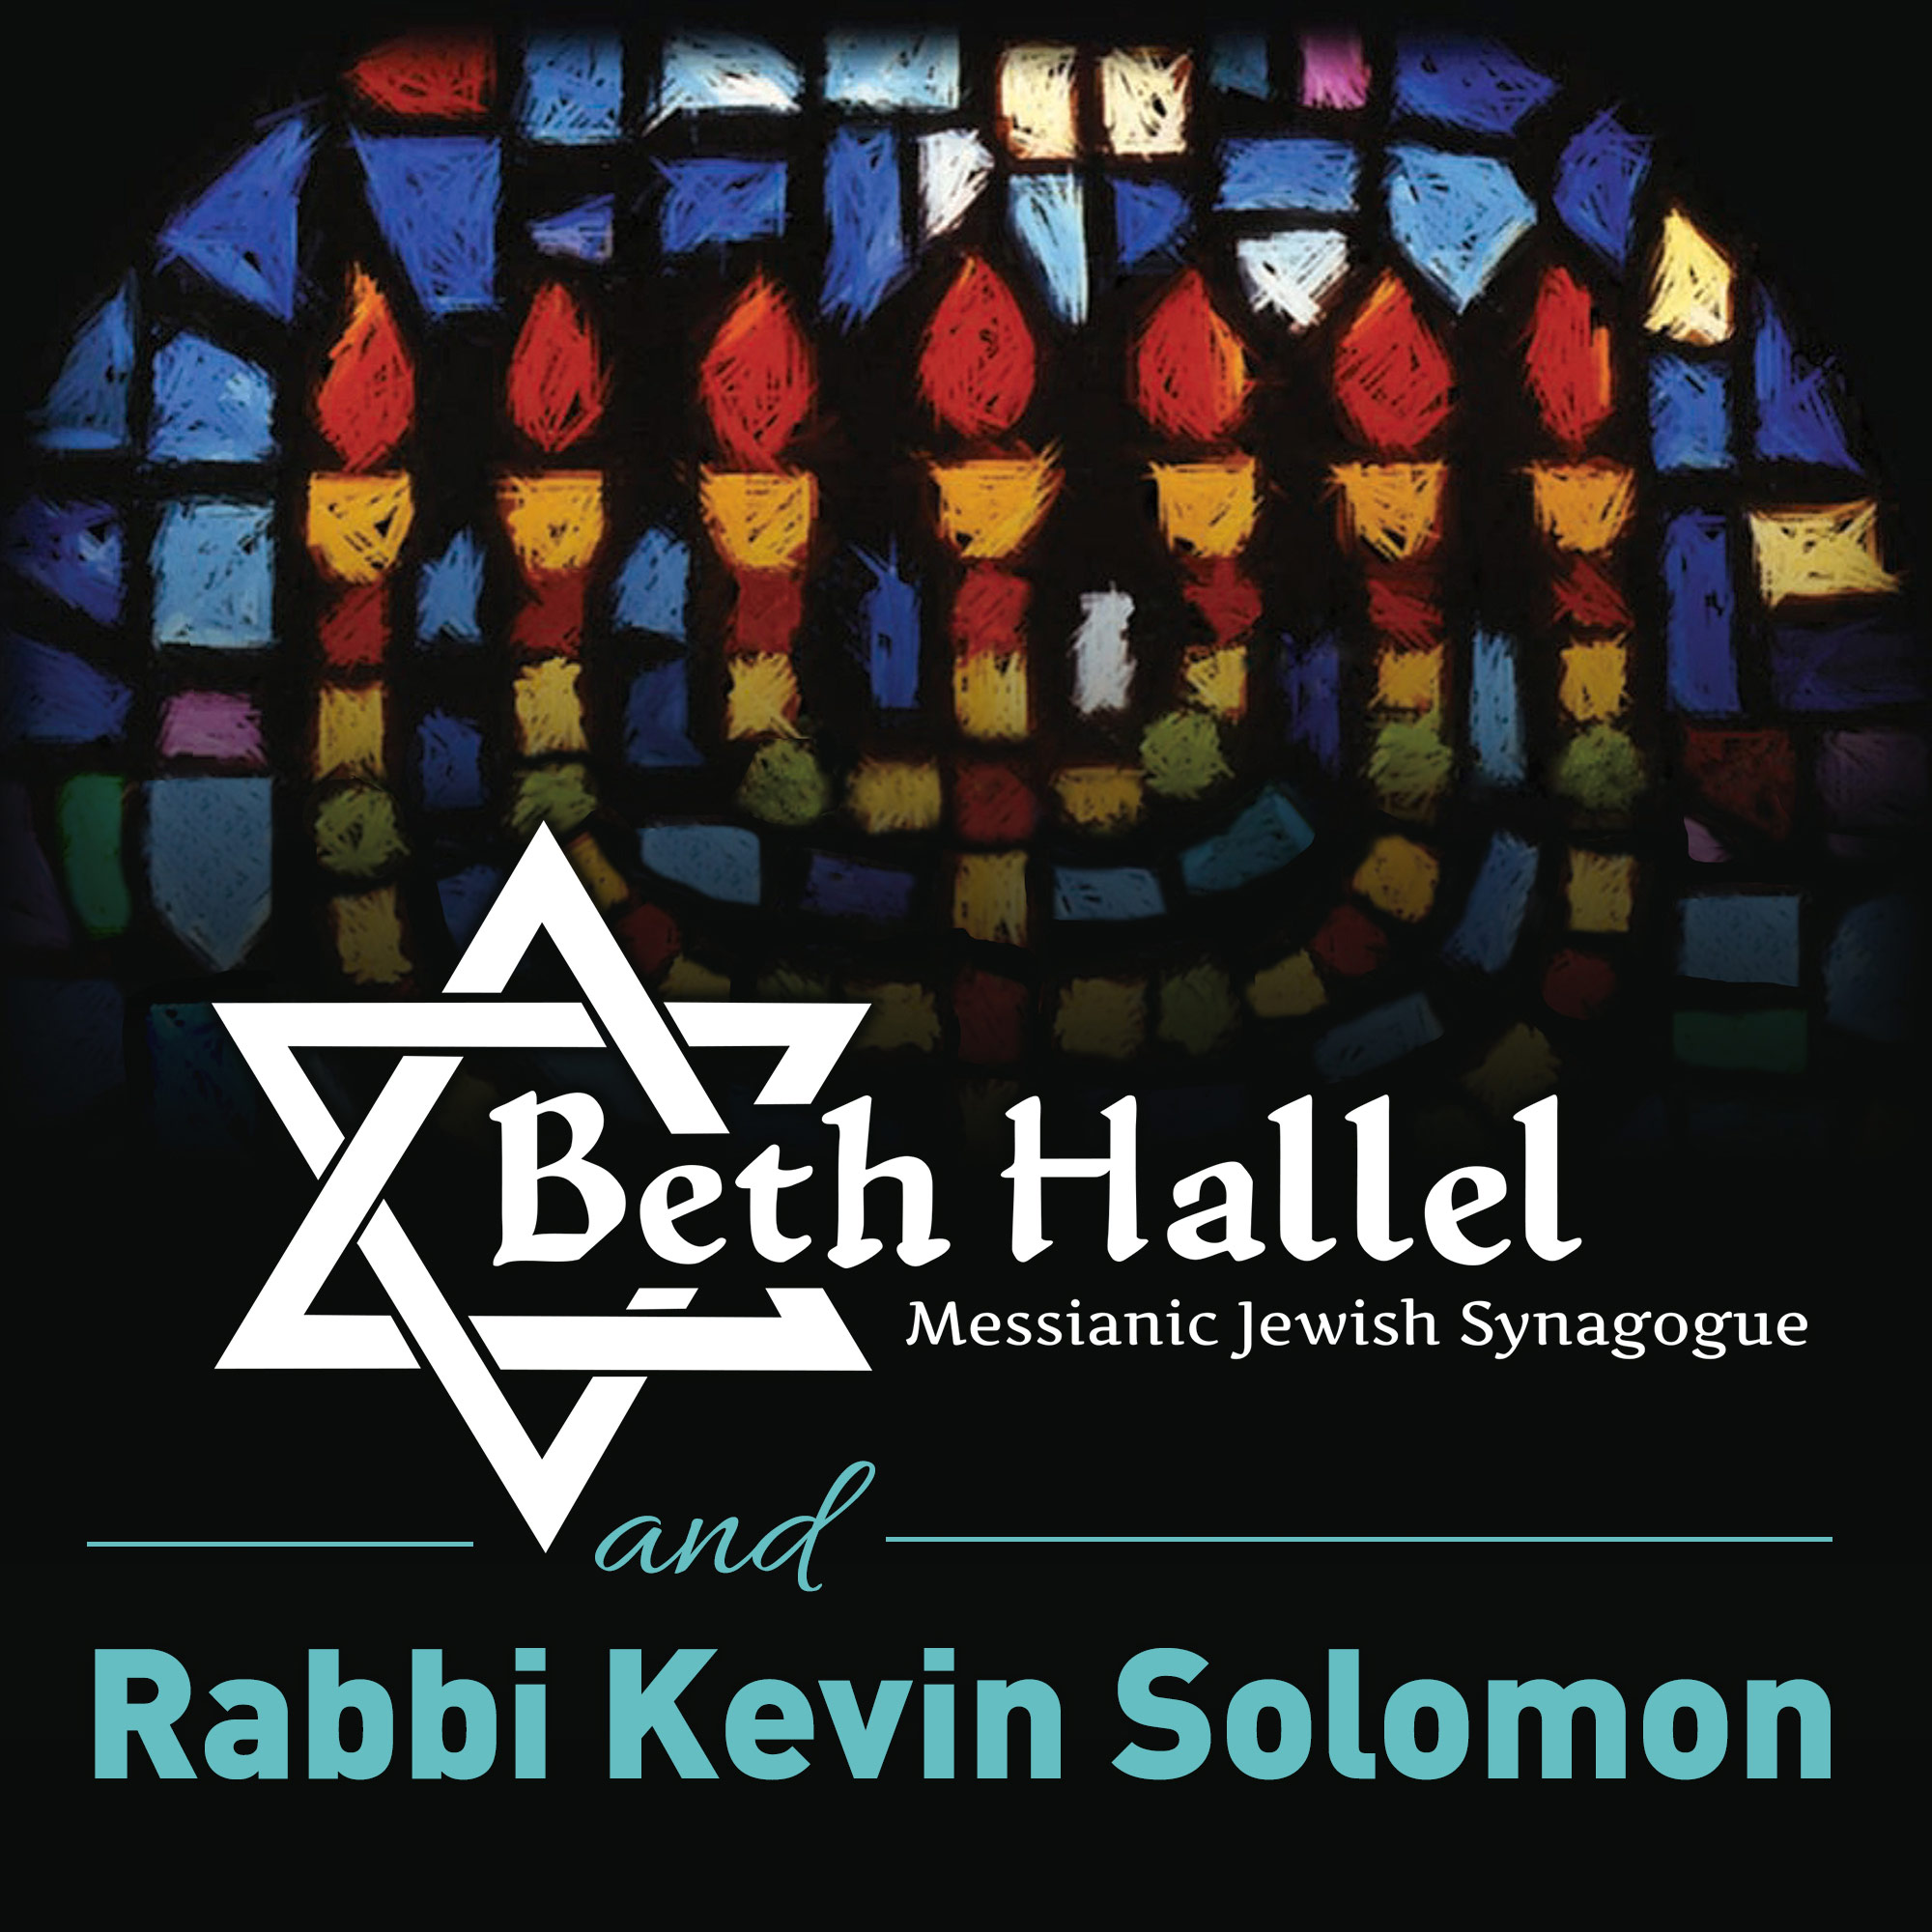 Show artwork for Congregation Beth Hallel and Rabbi Kevin Solomon